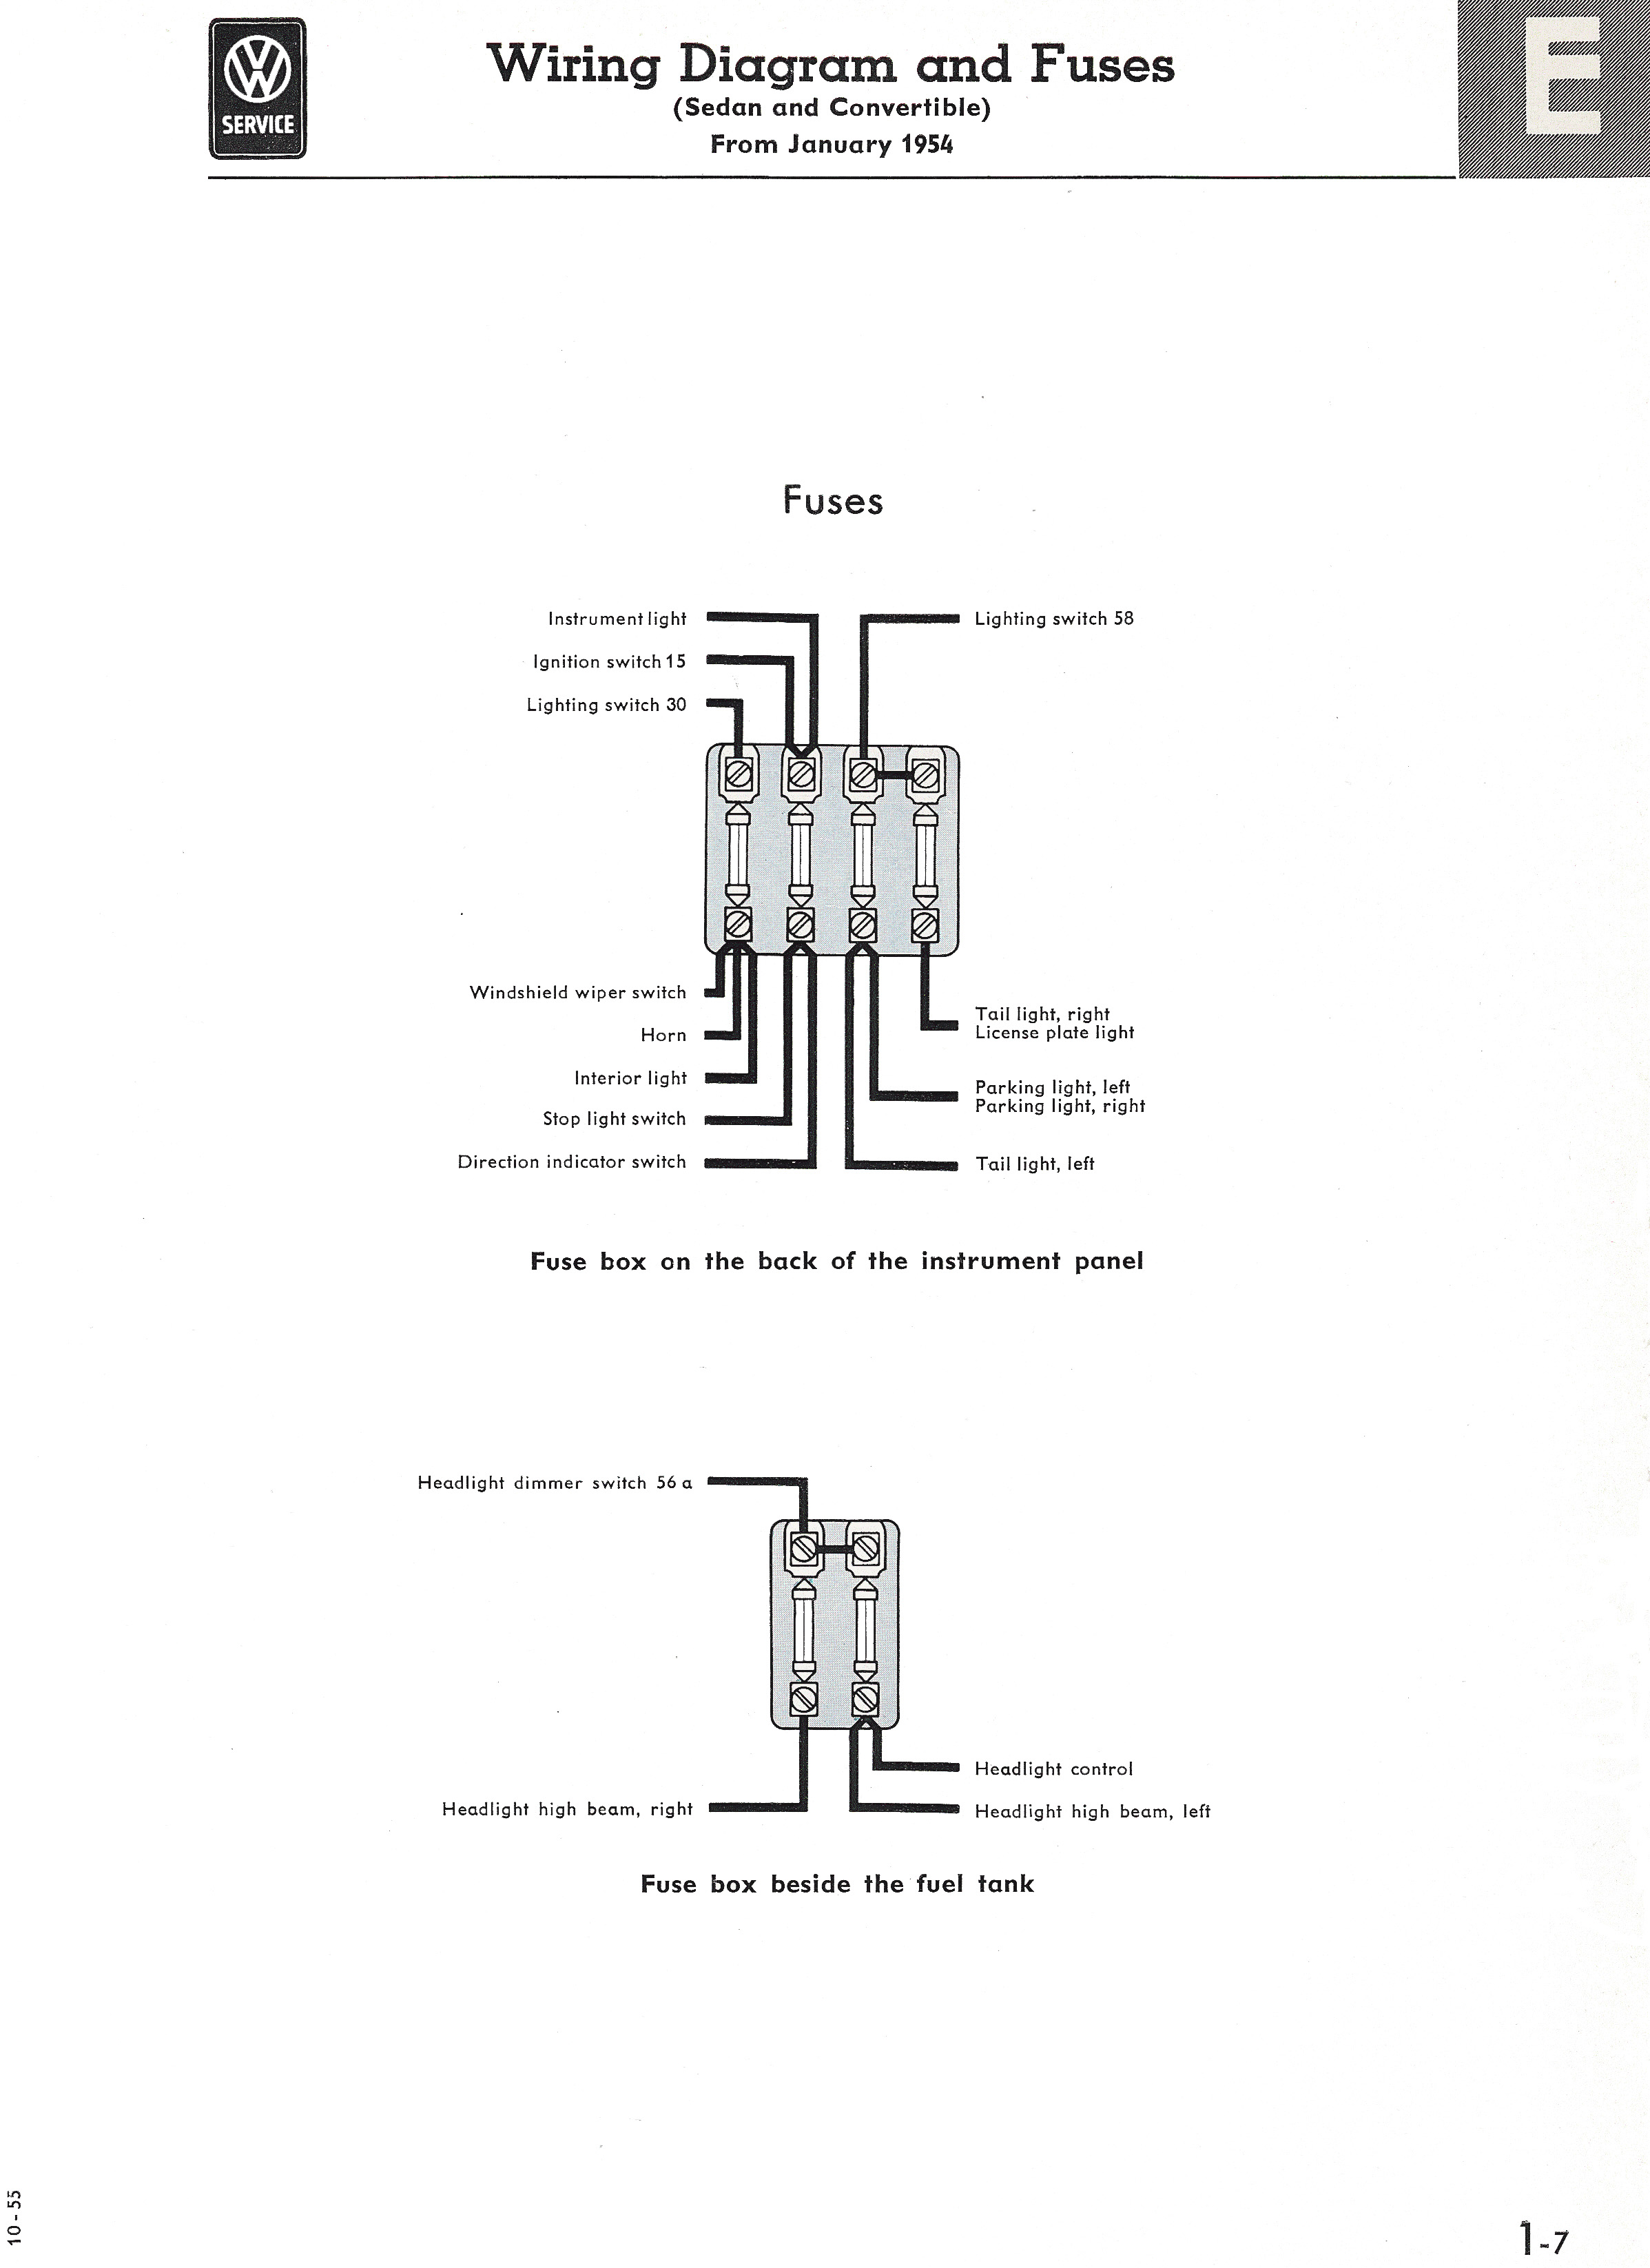 1972 Vw Beetle Turn Signal Wiring Diagram Just Another 72 Volkswagen Thesamba Com Type 1 Diagrams Rh 1970